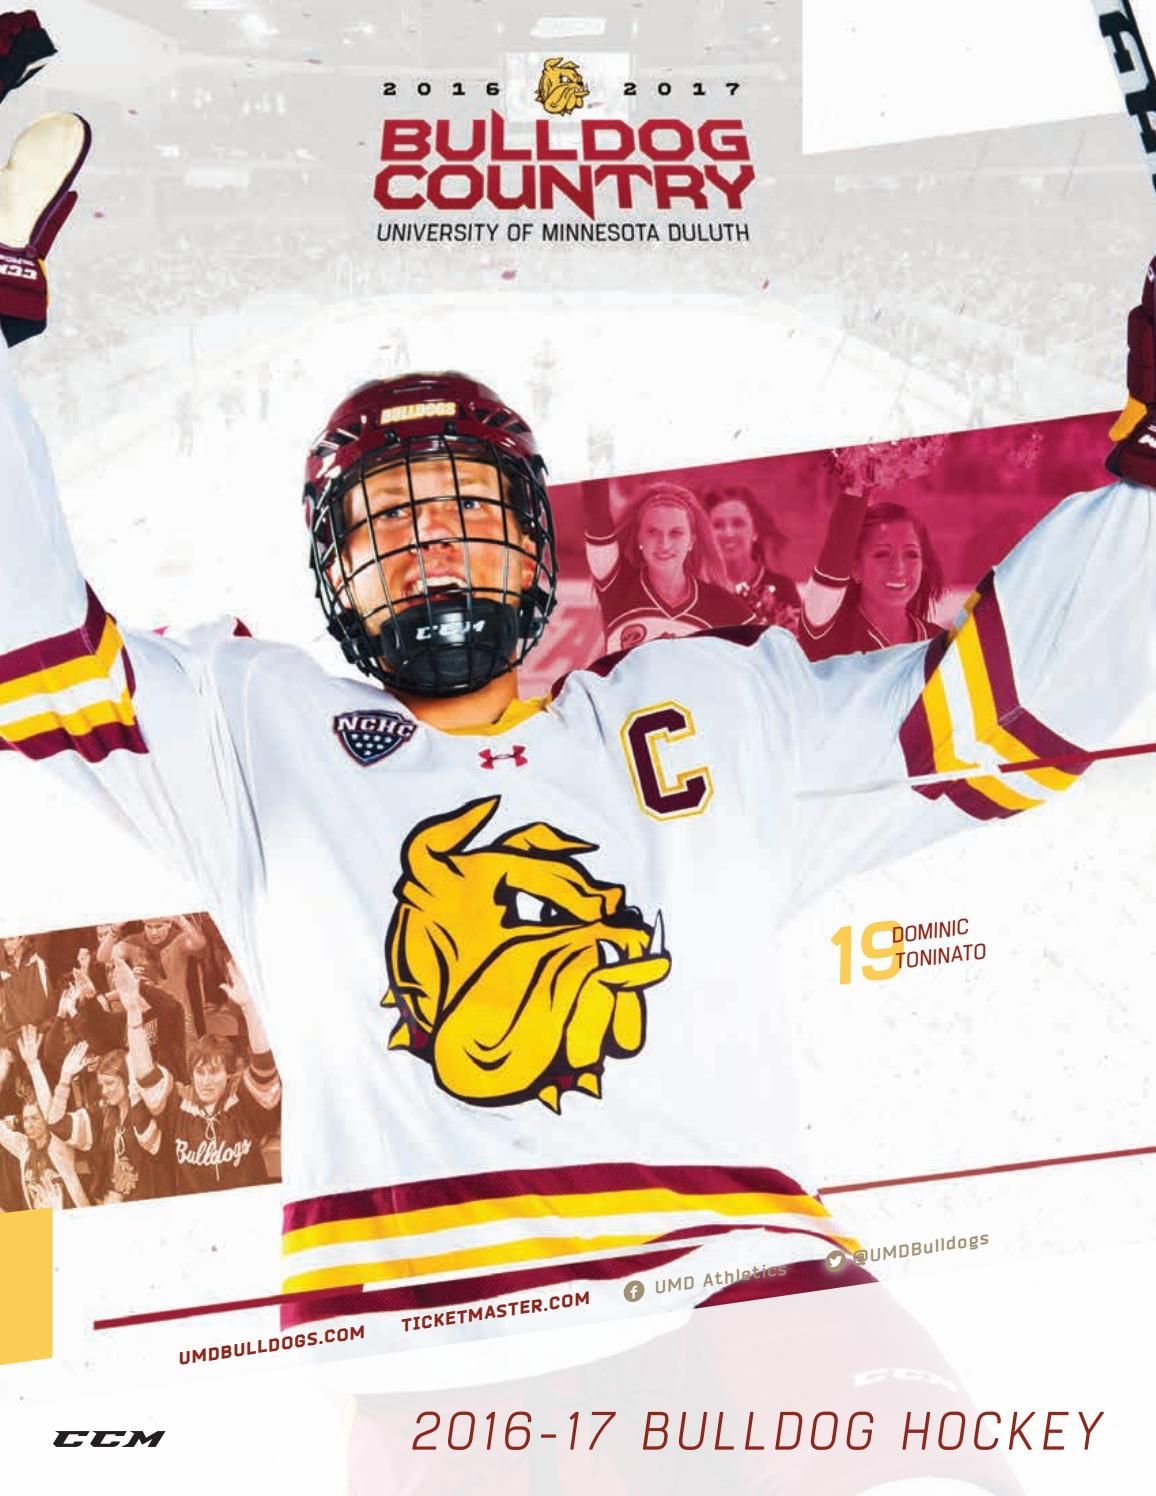 umd bulldog hockey tickets umd men s hockey media guide by umd bulldogs issuu 6250